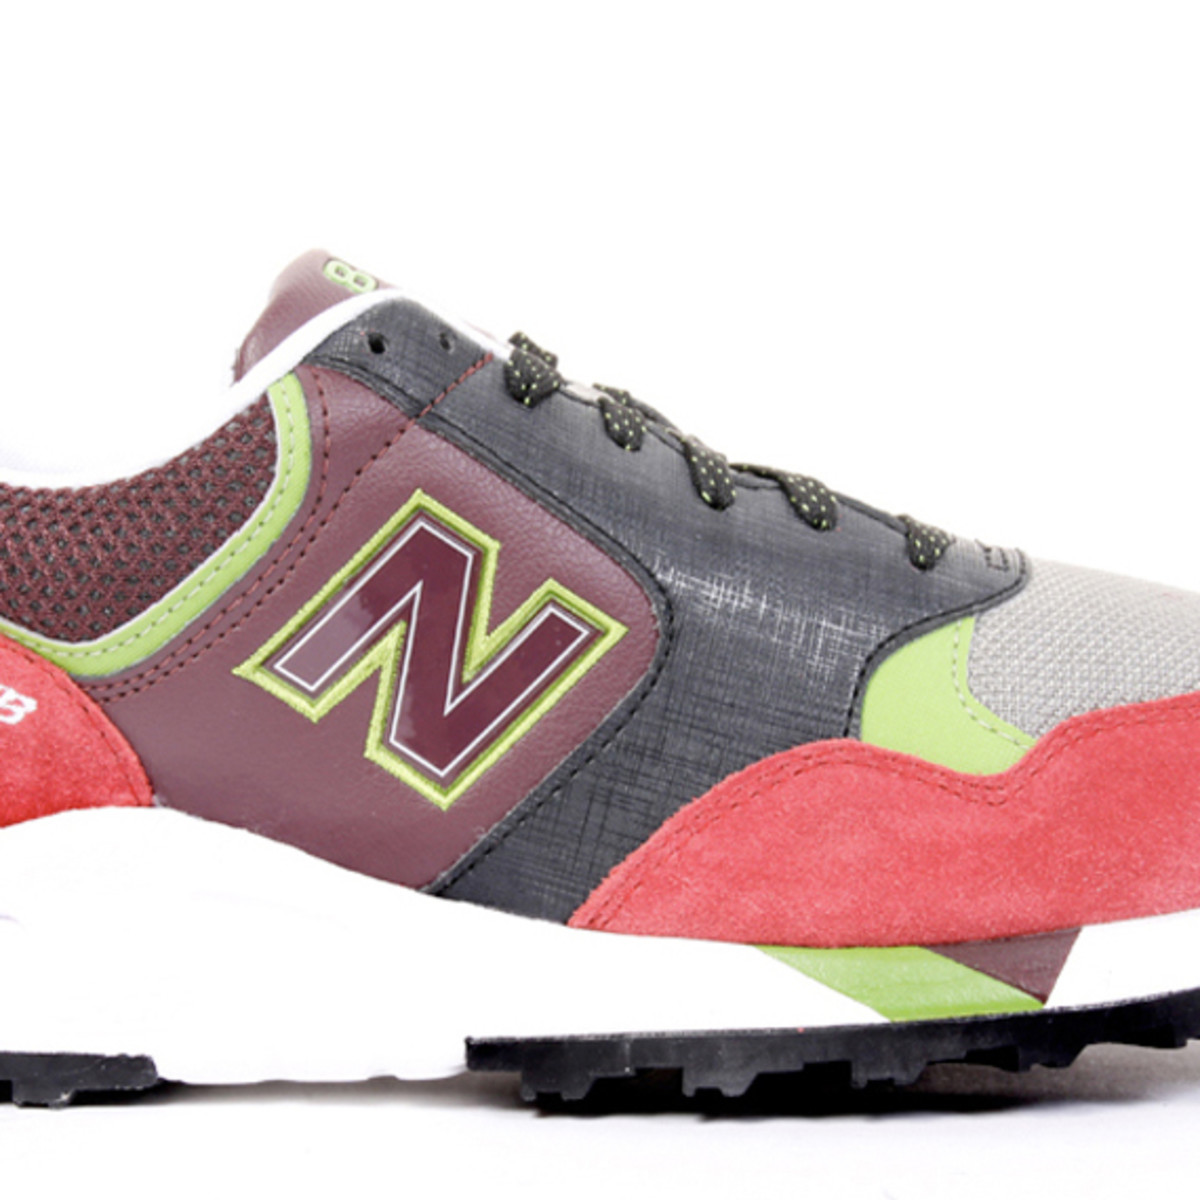 new-balance-fall-2009-850-basket-06